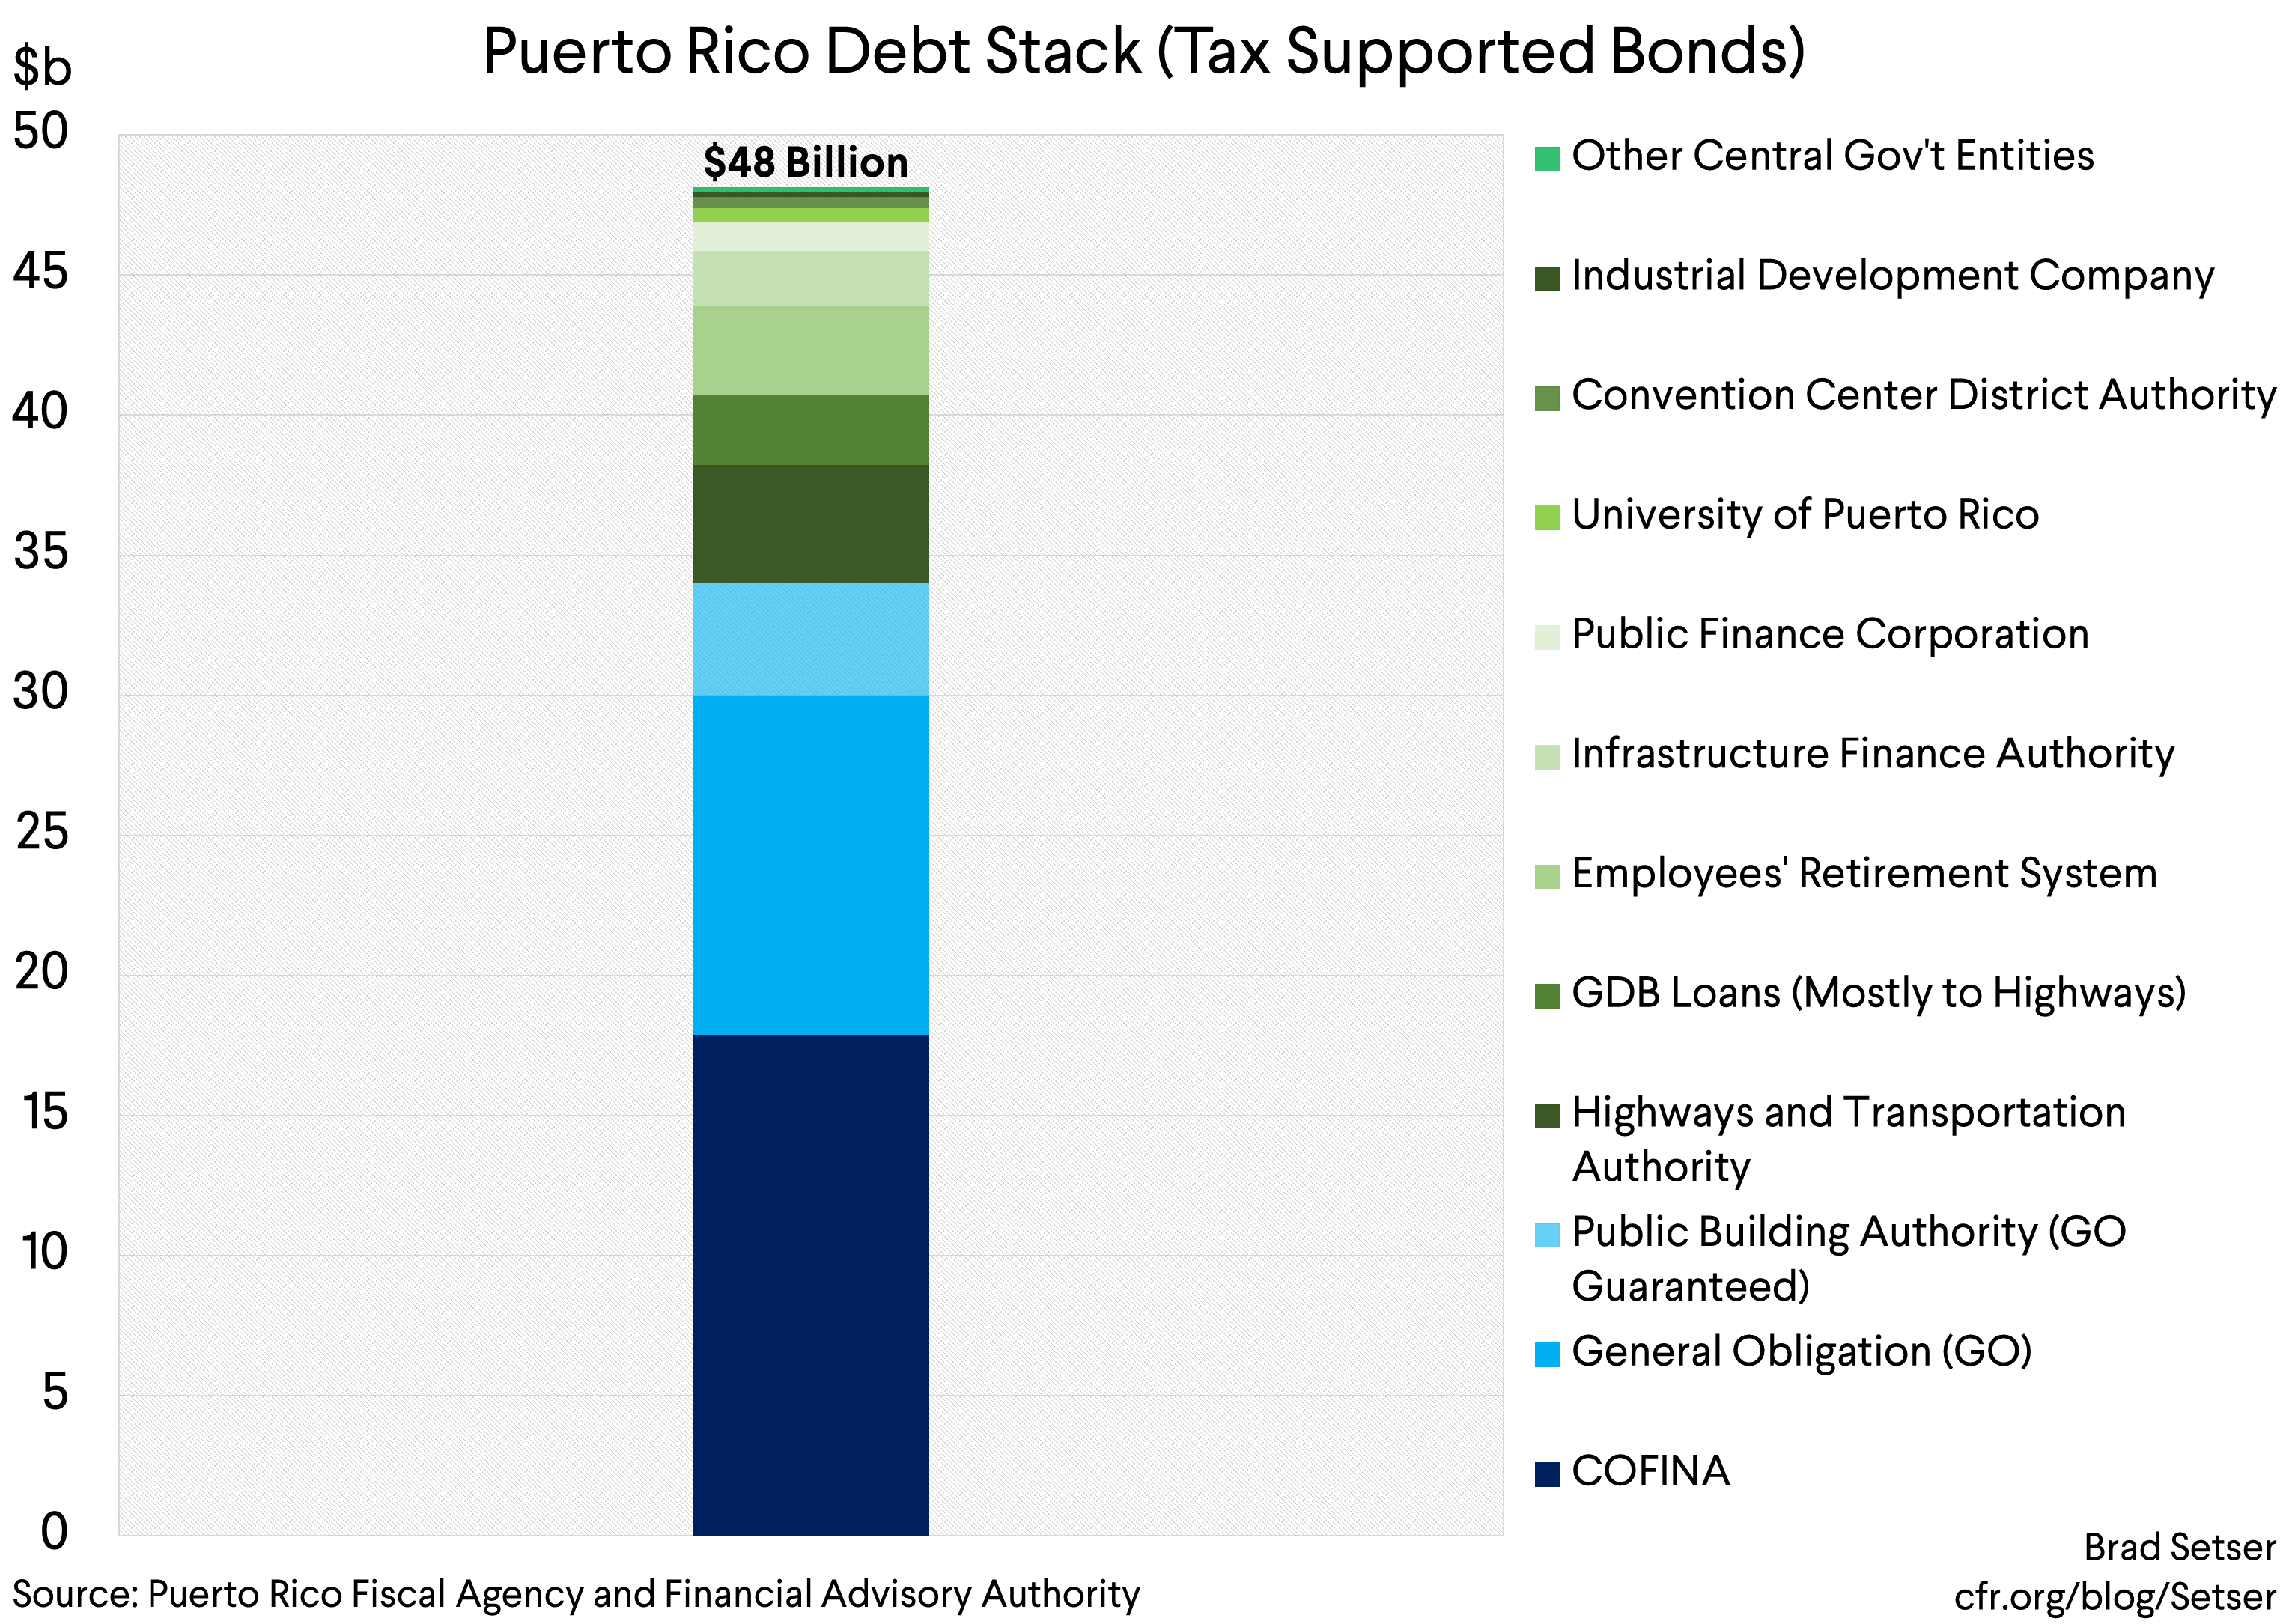 Will the Proposed Restructuring of COFINA Bonds Assure Puerto Rico's Return to Debt Sustainability?